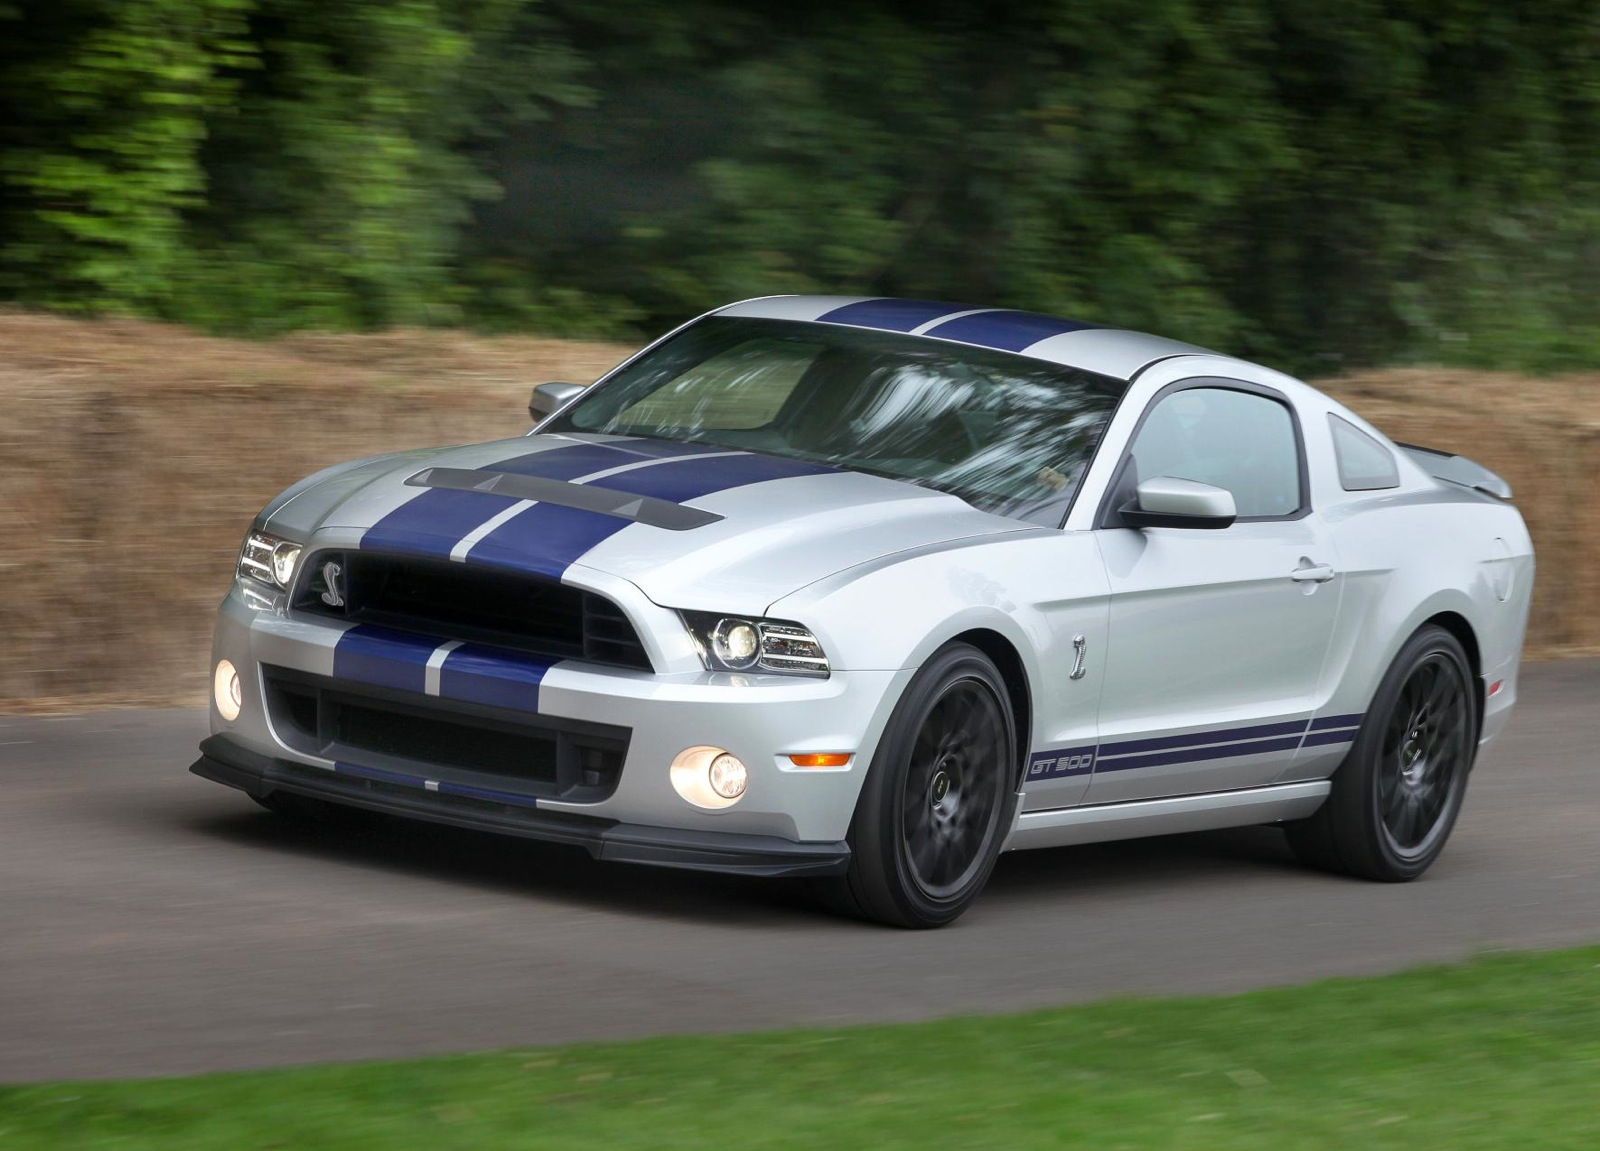 2014 ford mustang shelby gt500 gets modest bump in price. Black Bedroom Furniture Sets. Home Design Ideas